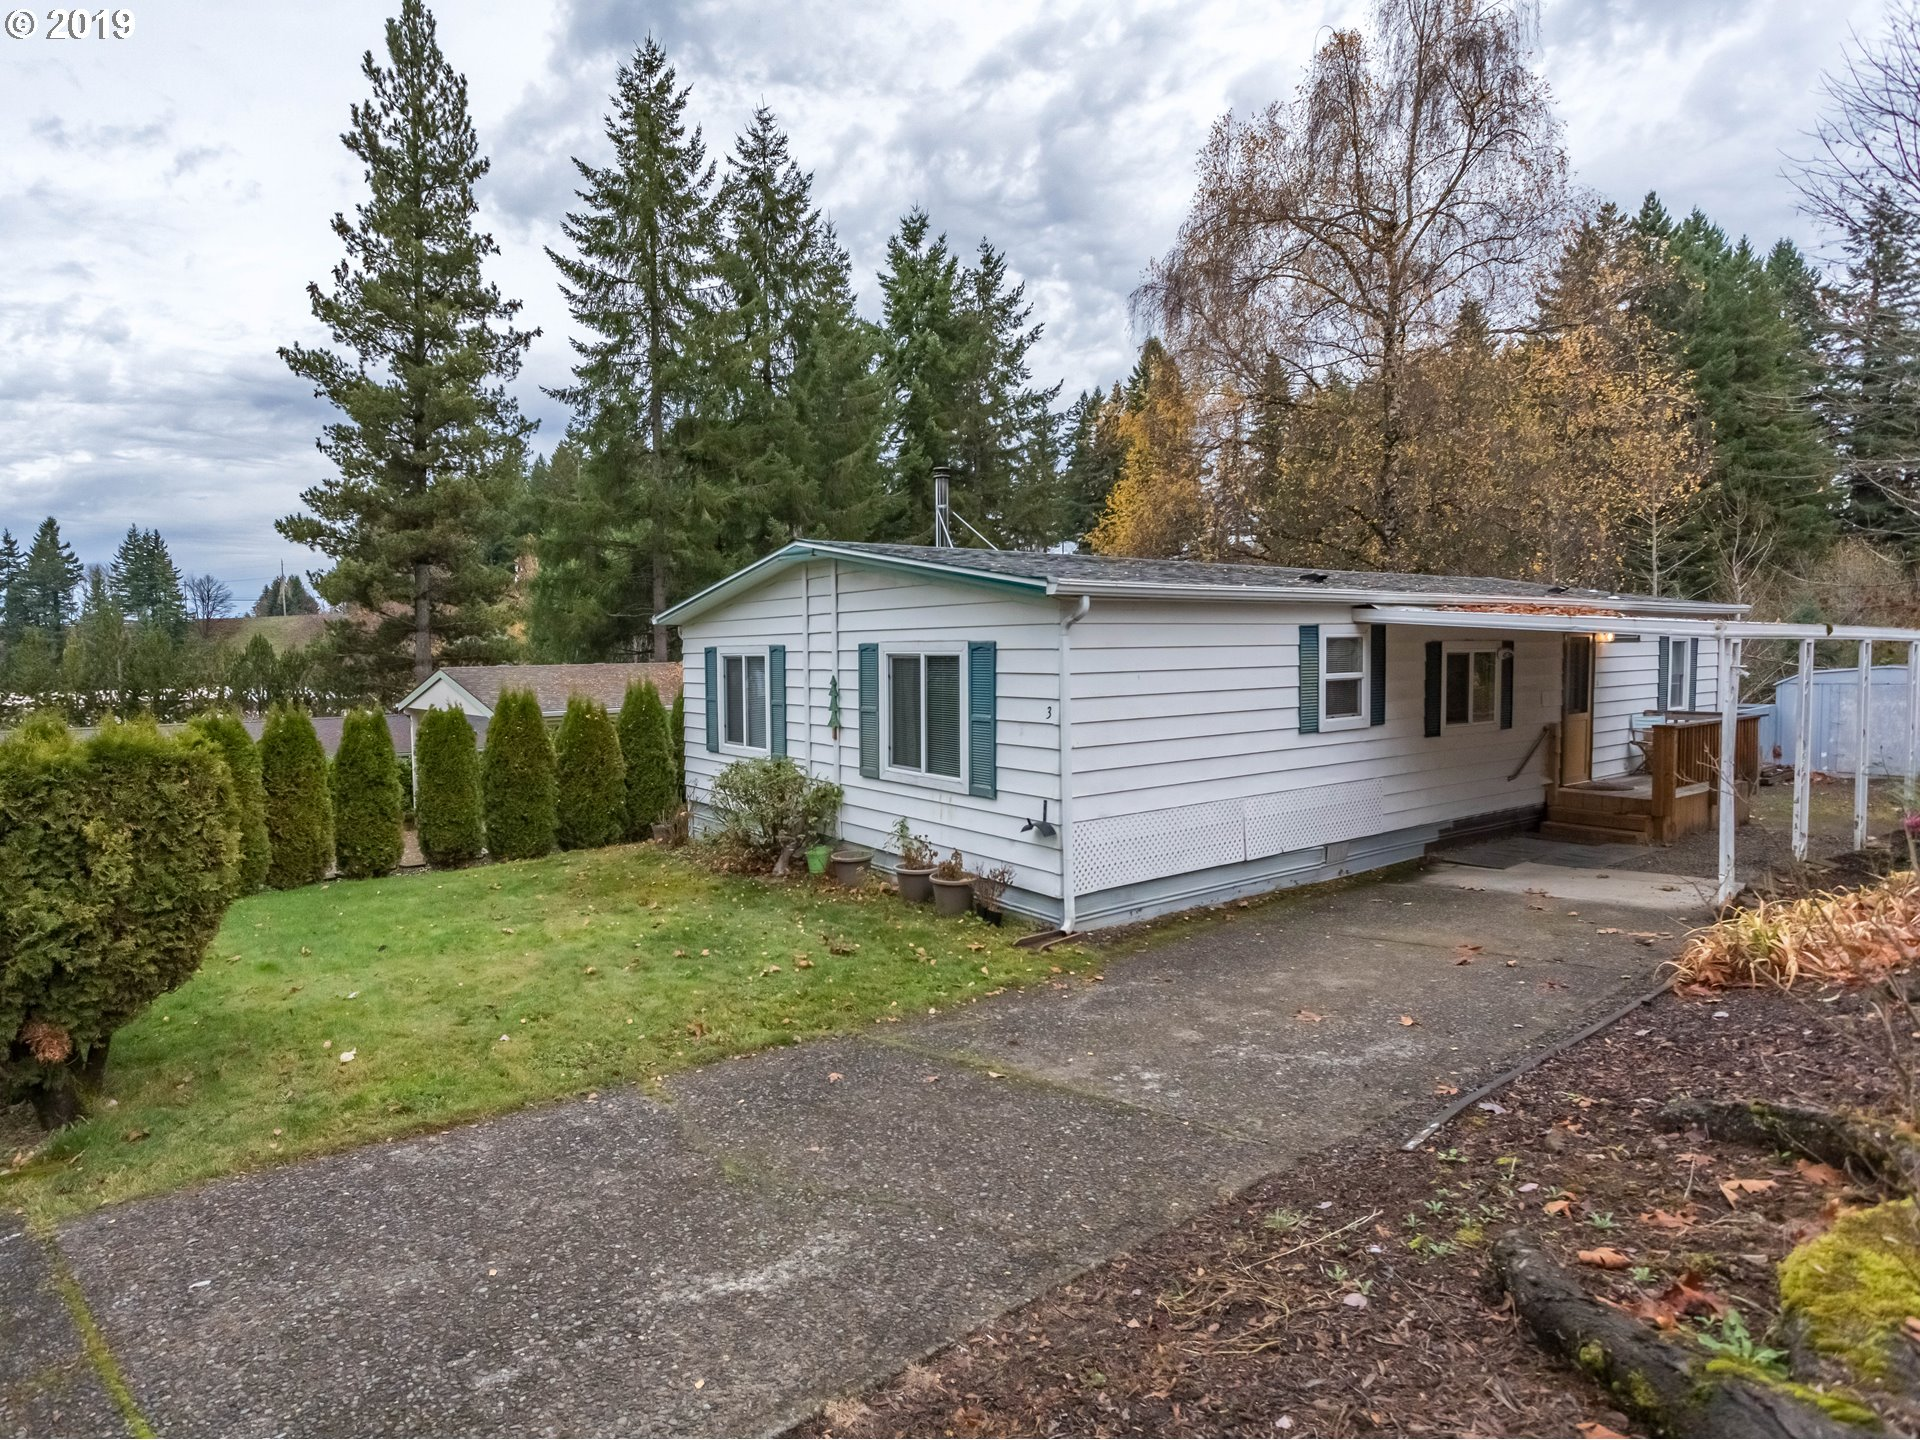 Sandy Oregon Homes for Sale on 1989 nashua mobile home, 1989 holiday mobile home, 1989 indian mobile home,